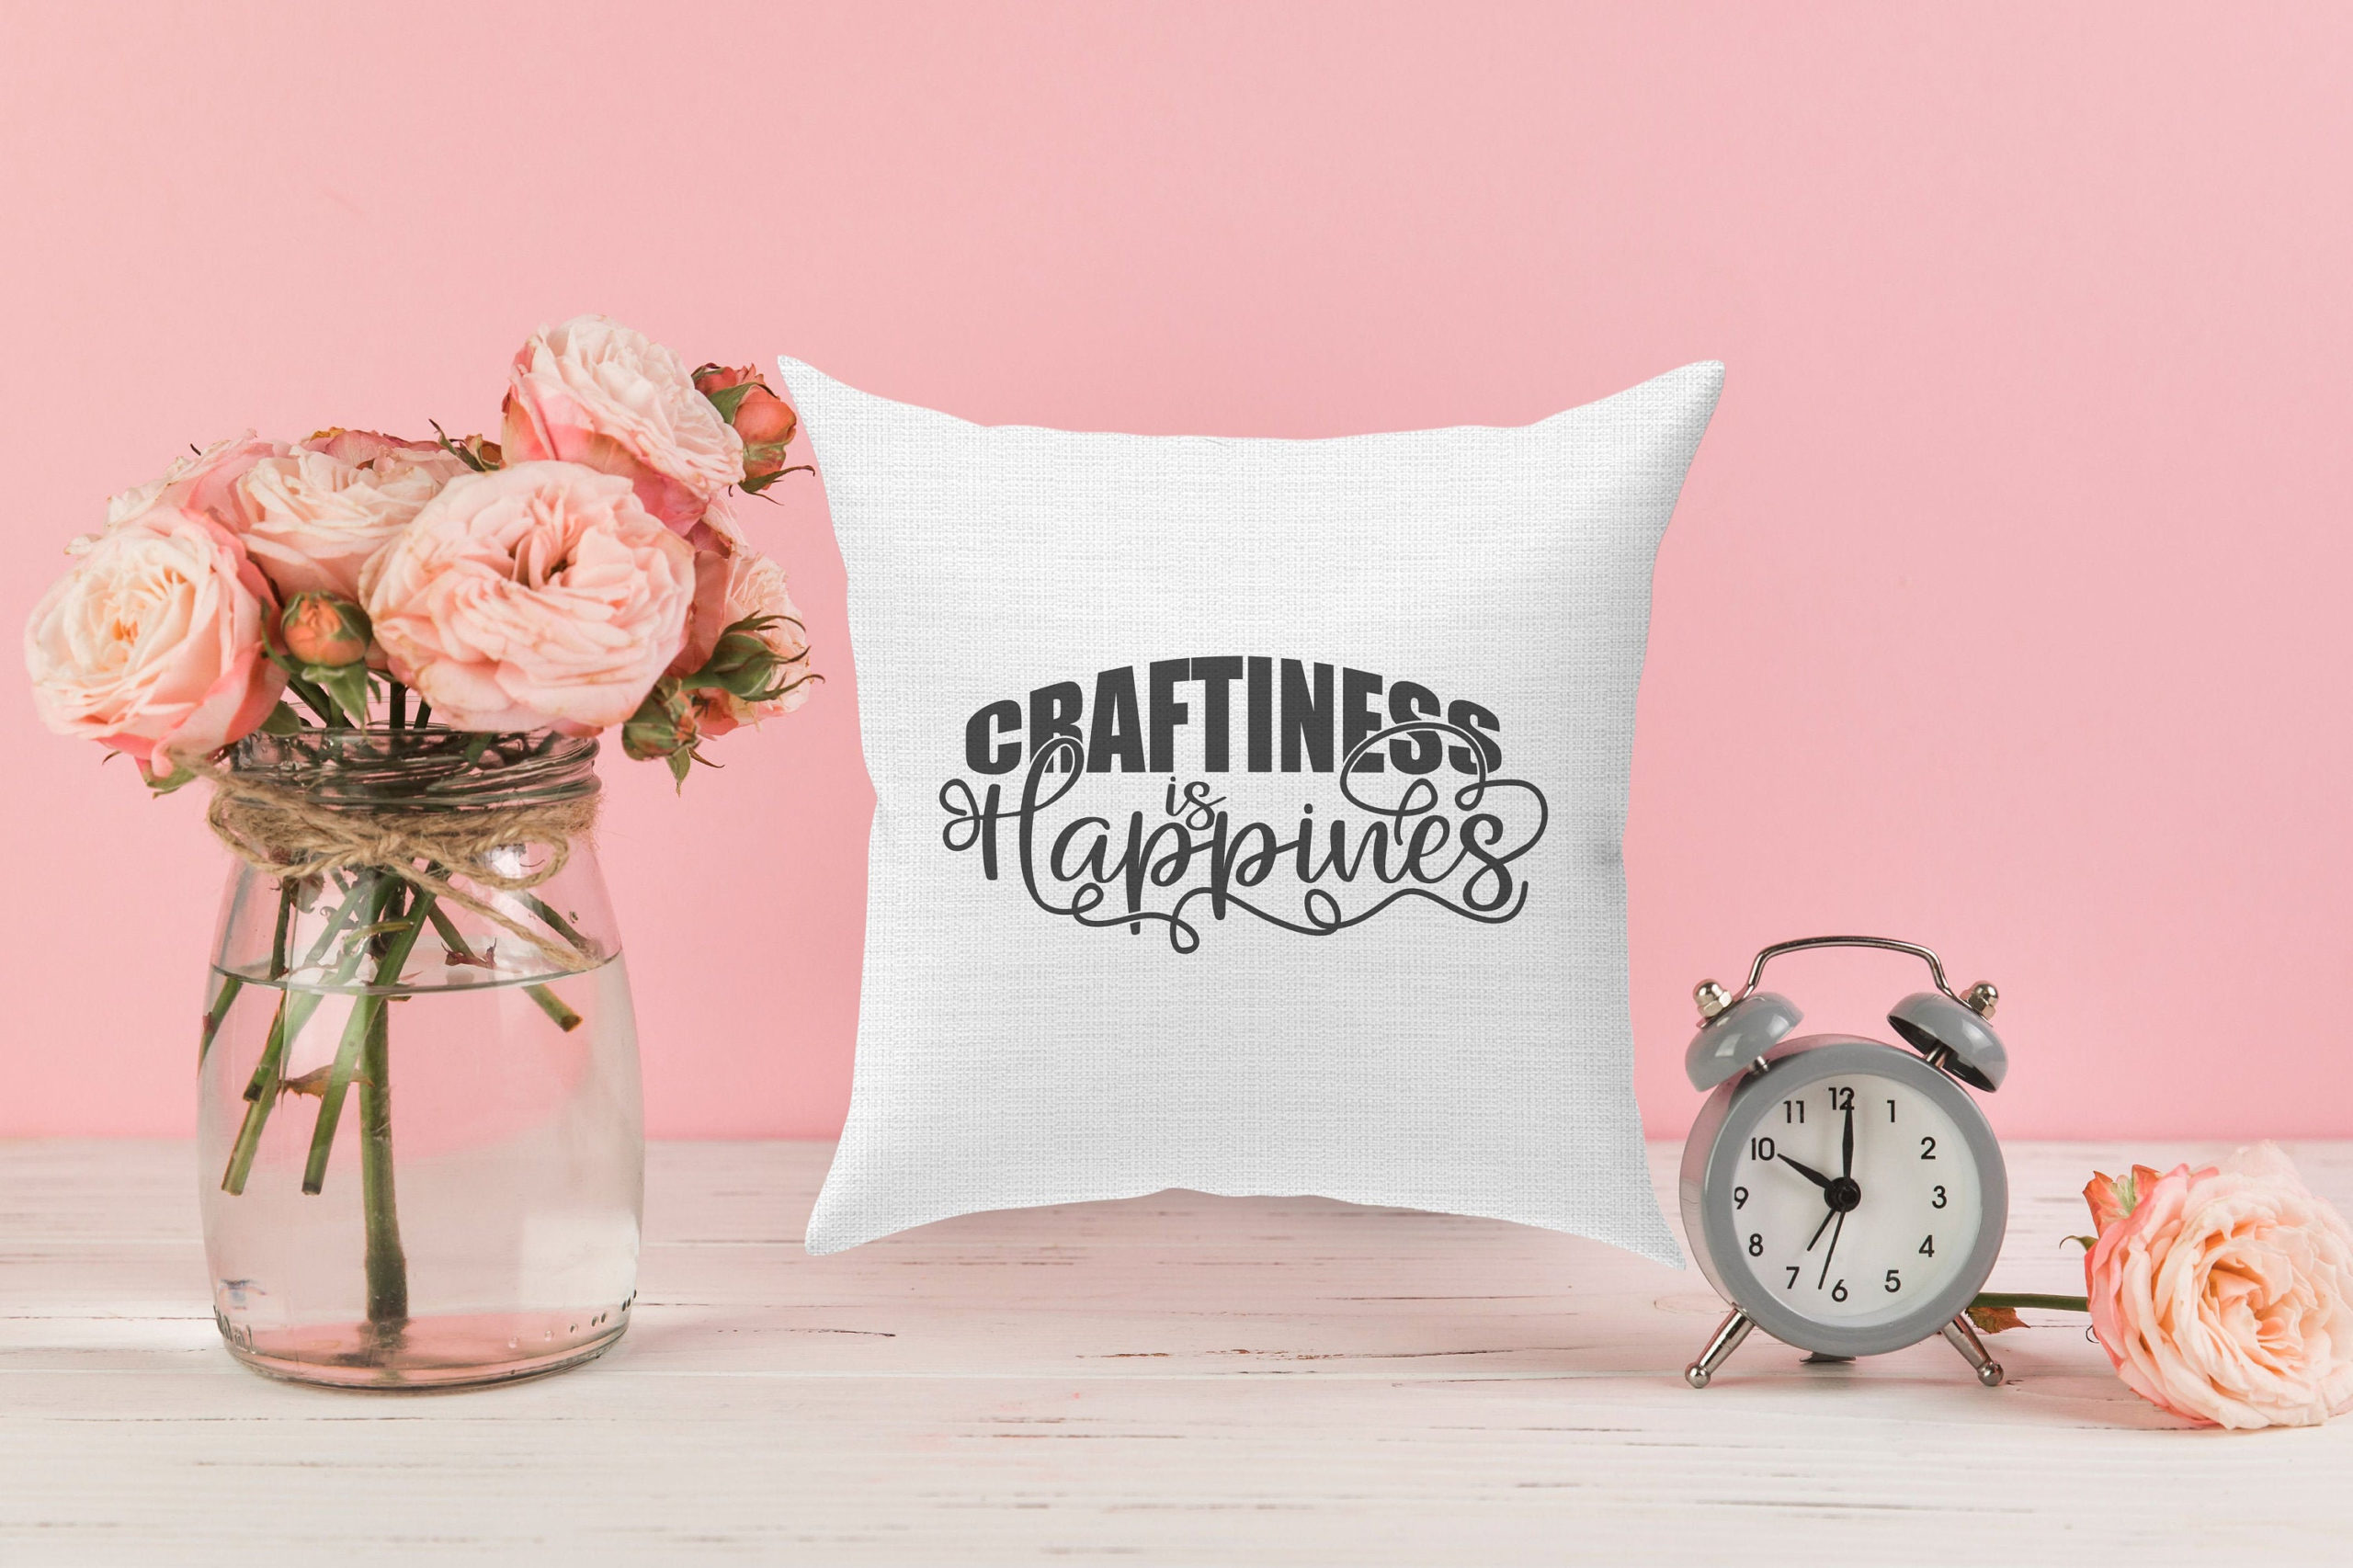 Craftiness-is-happiness-svg-craftiness-svg-happiness-svg-crafty-saying-craft-svg-craft-svg-design-craft-cut-file-svg-for-cricut-60512f10